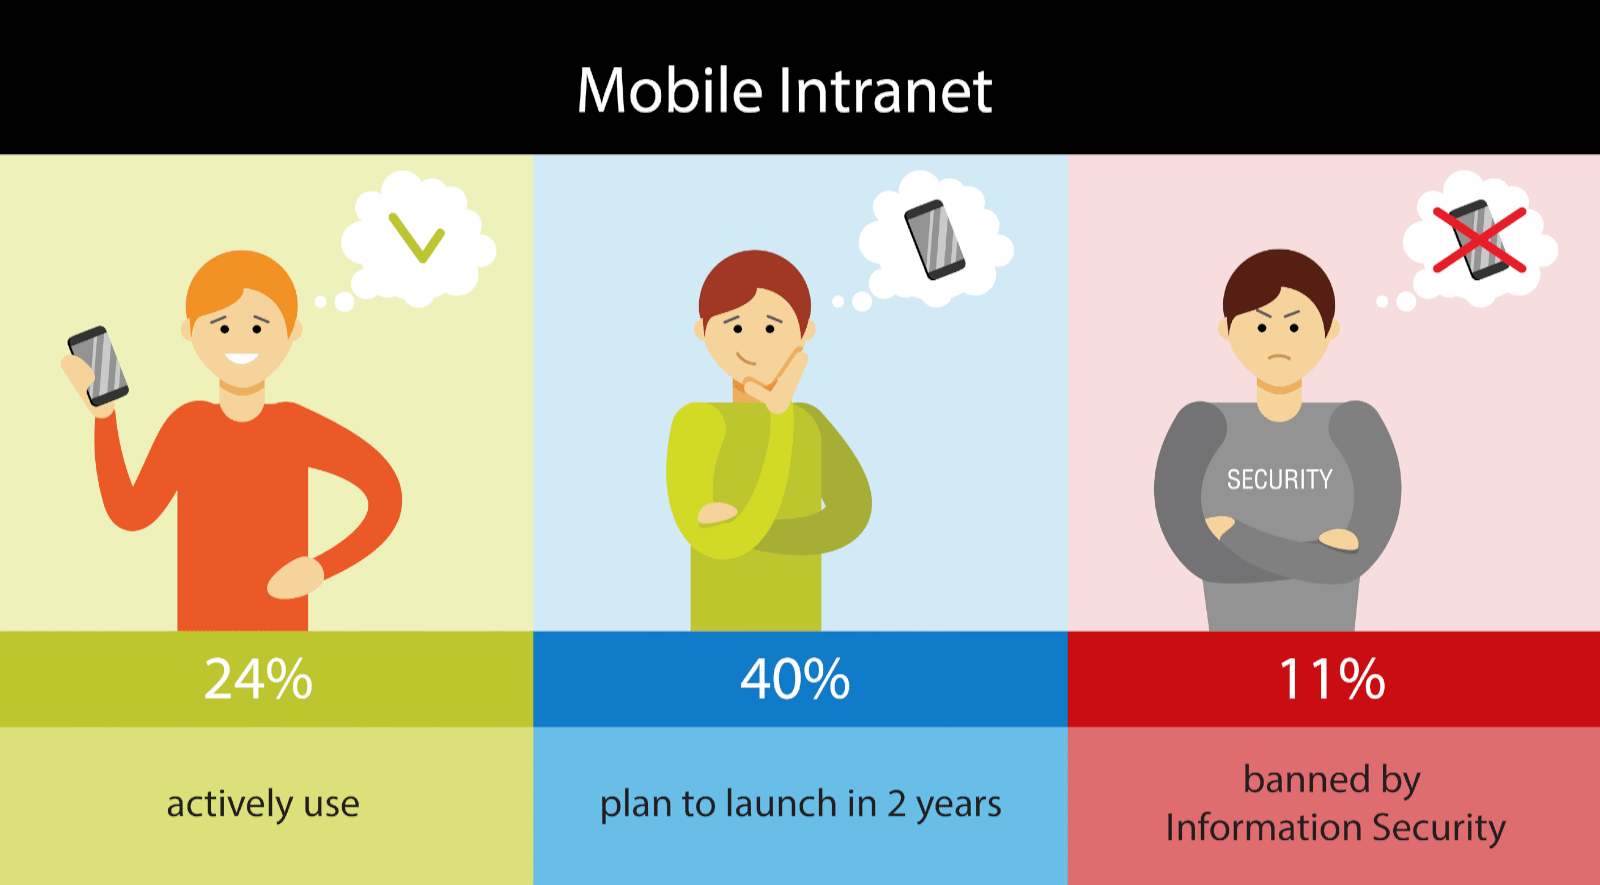 Mobile intranets: 24% use. 40% plan to launch. 11% banned by Info Sec.